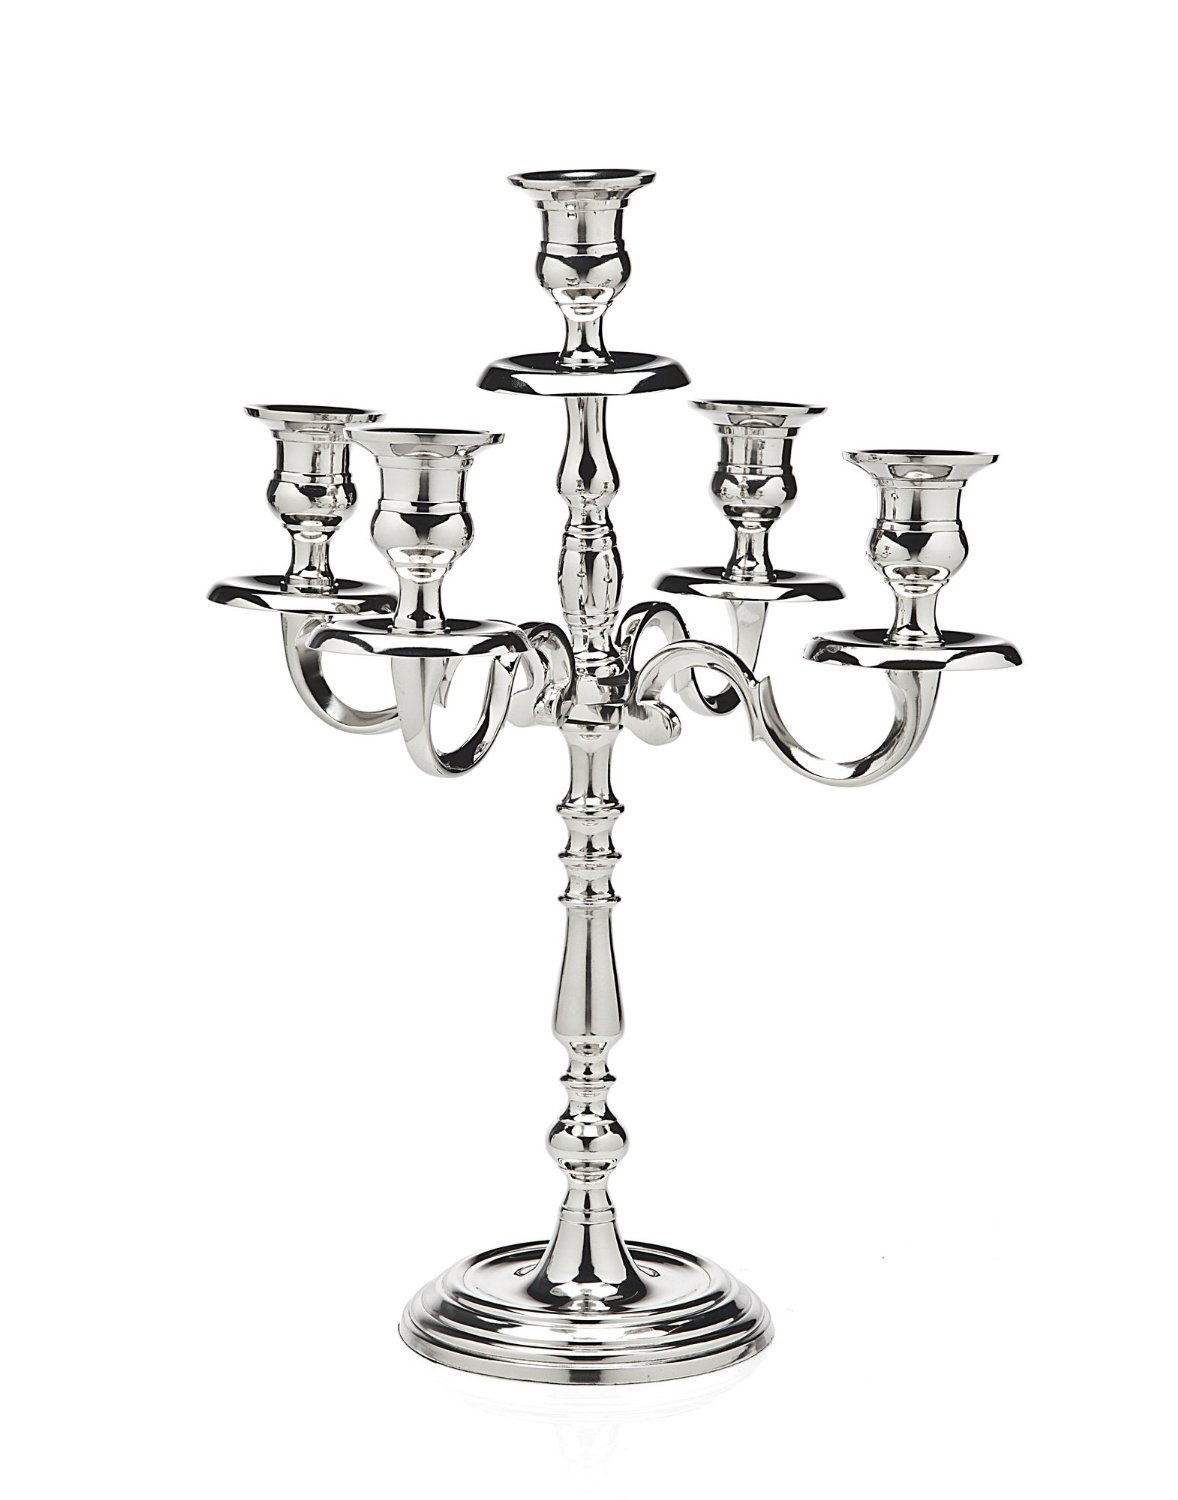 Classic Nickel Plated Candelabra 5 Light